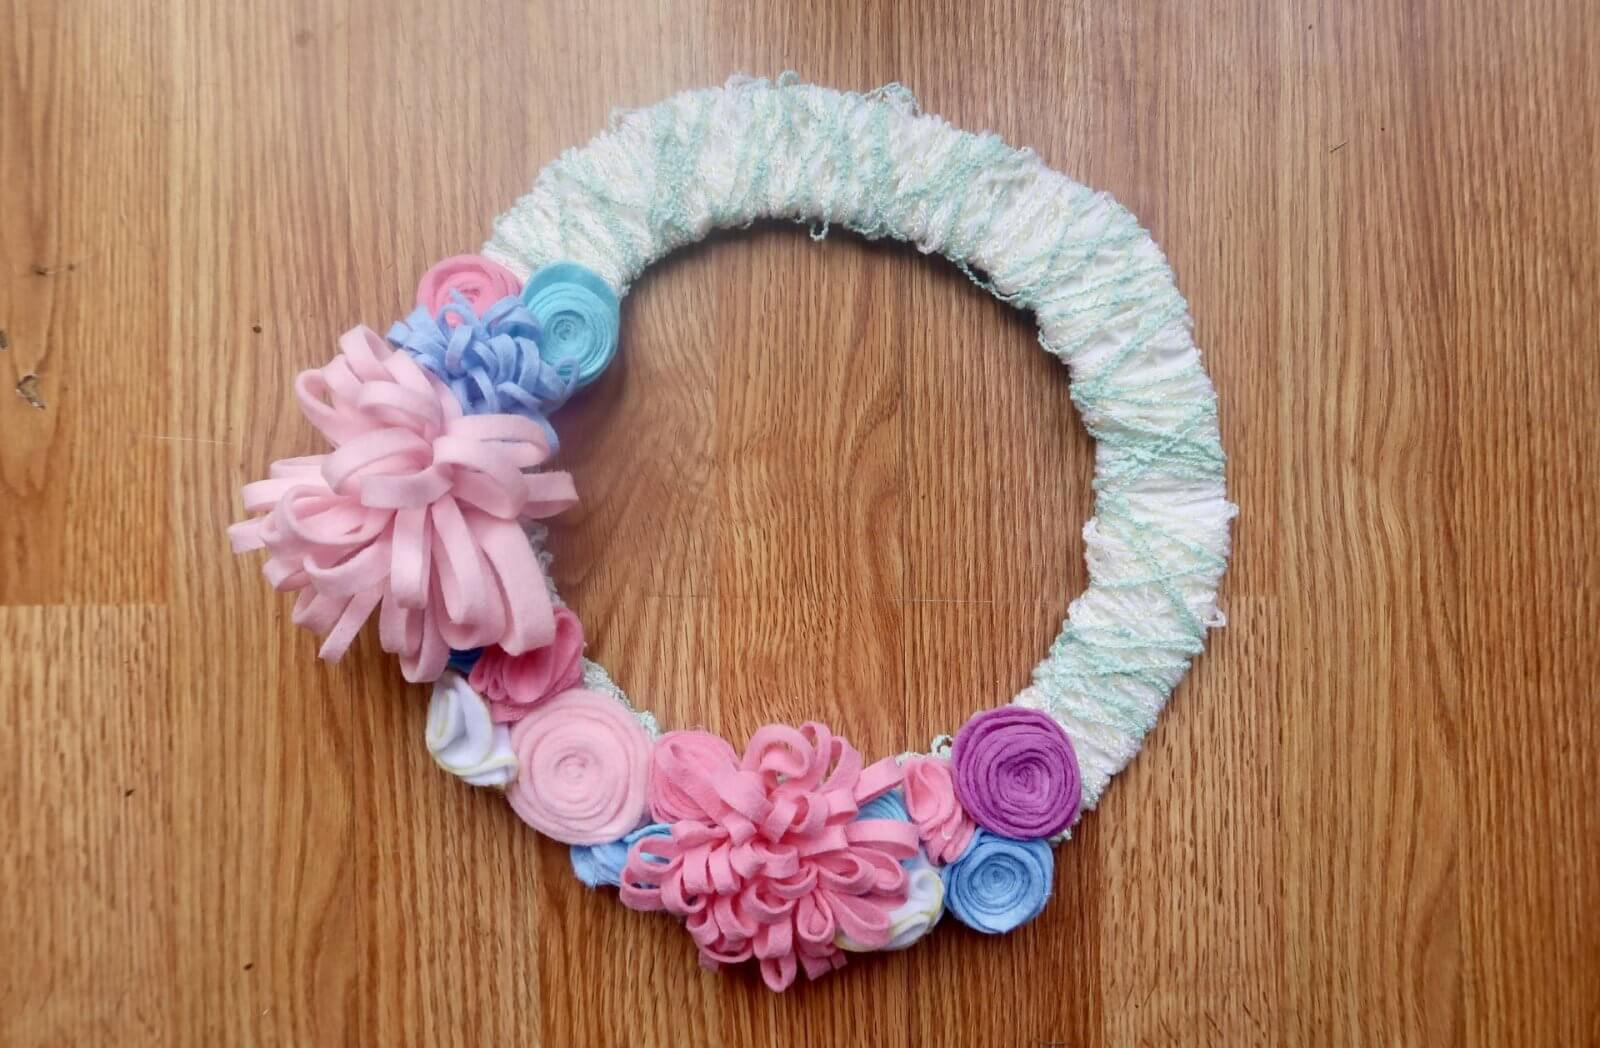 How To Make A Floral Spring Wreath